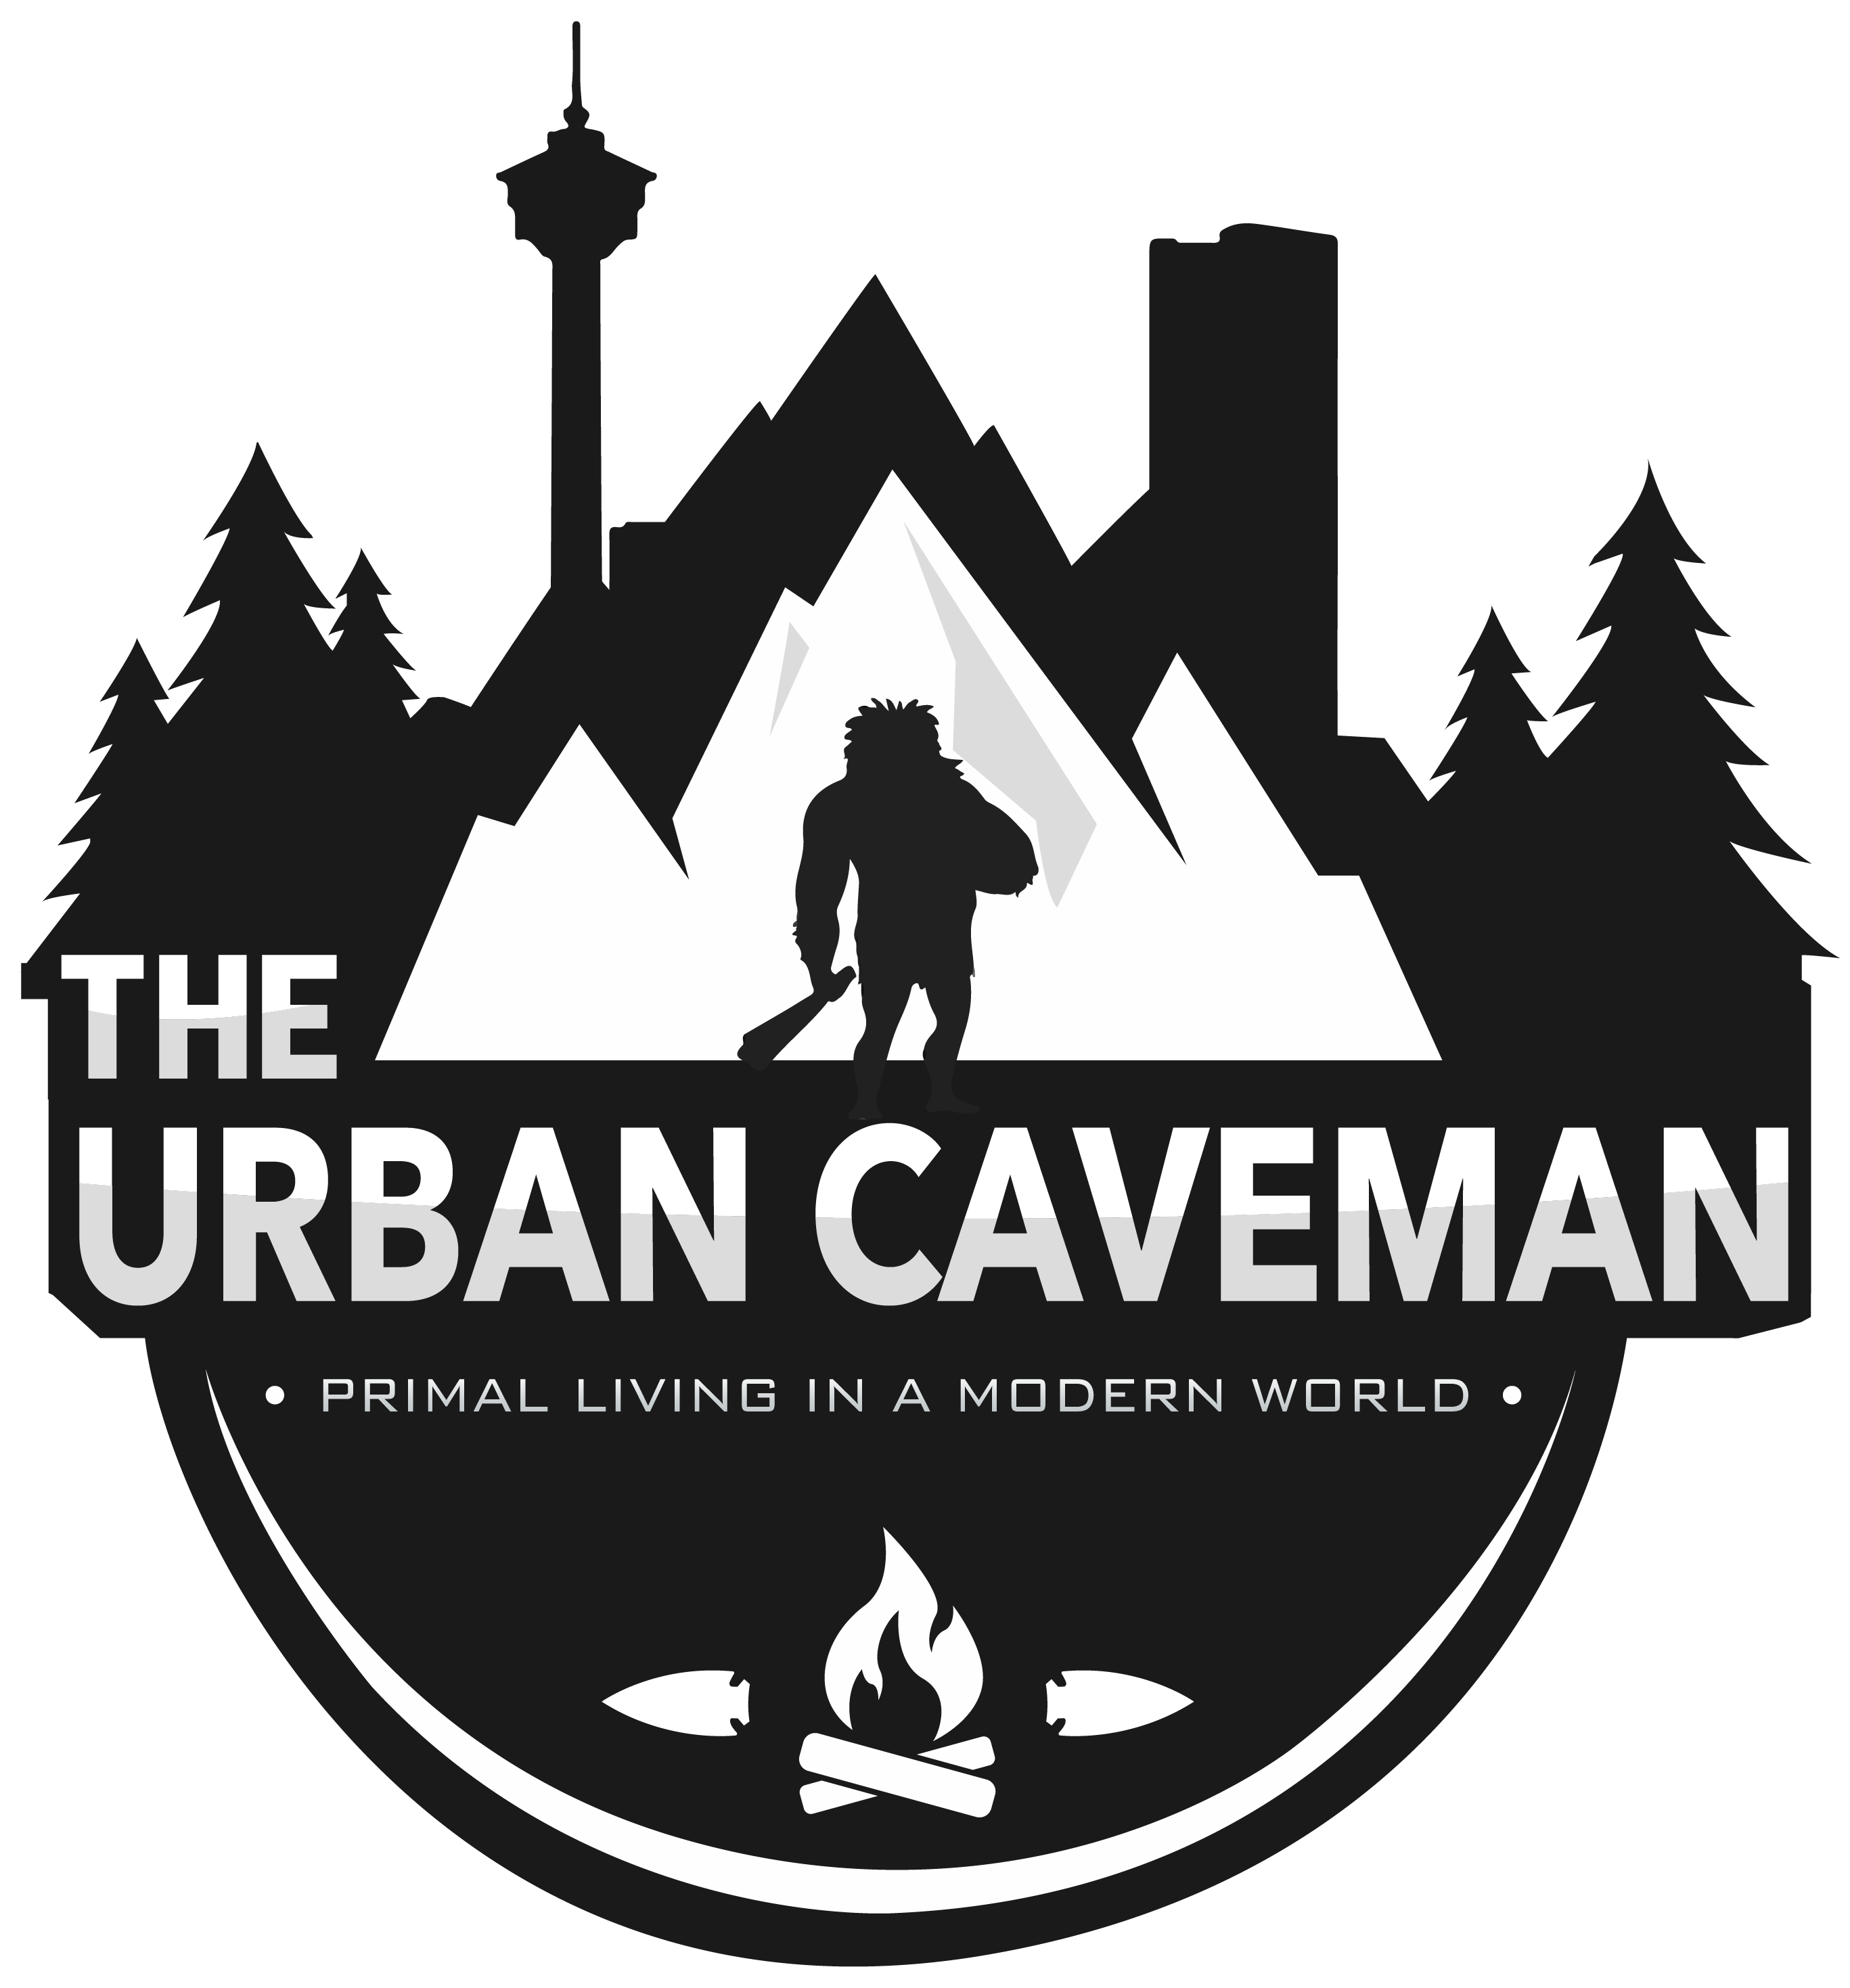 The Urban Caveman